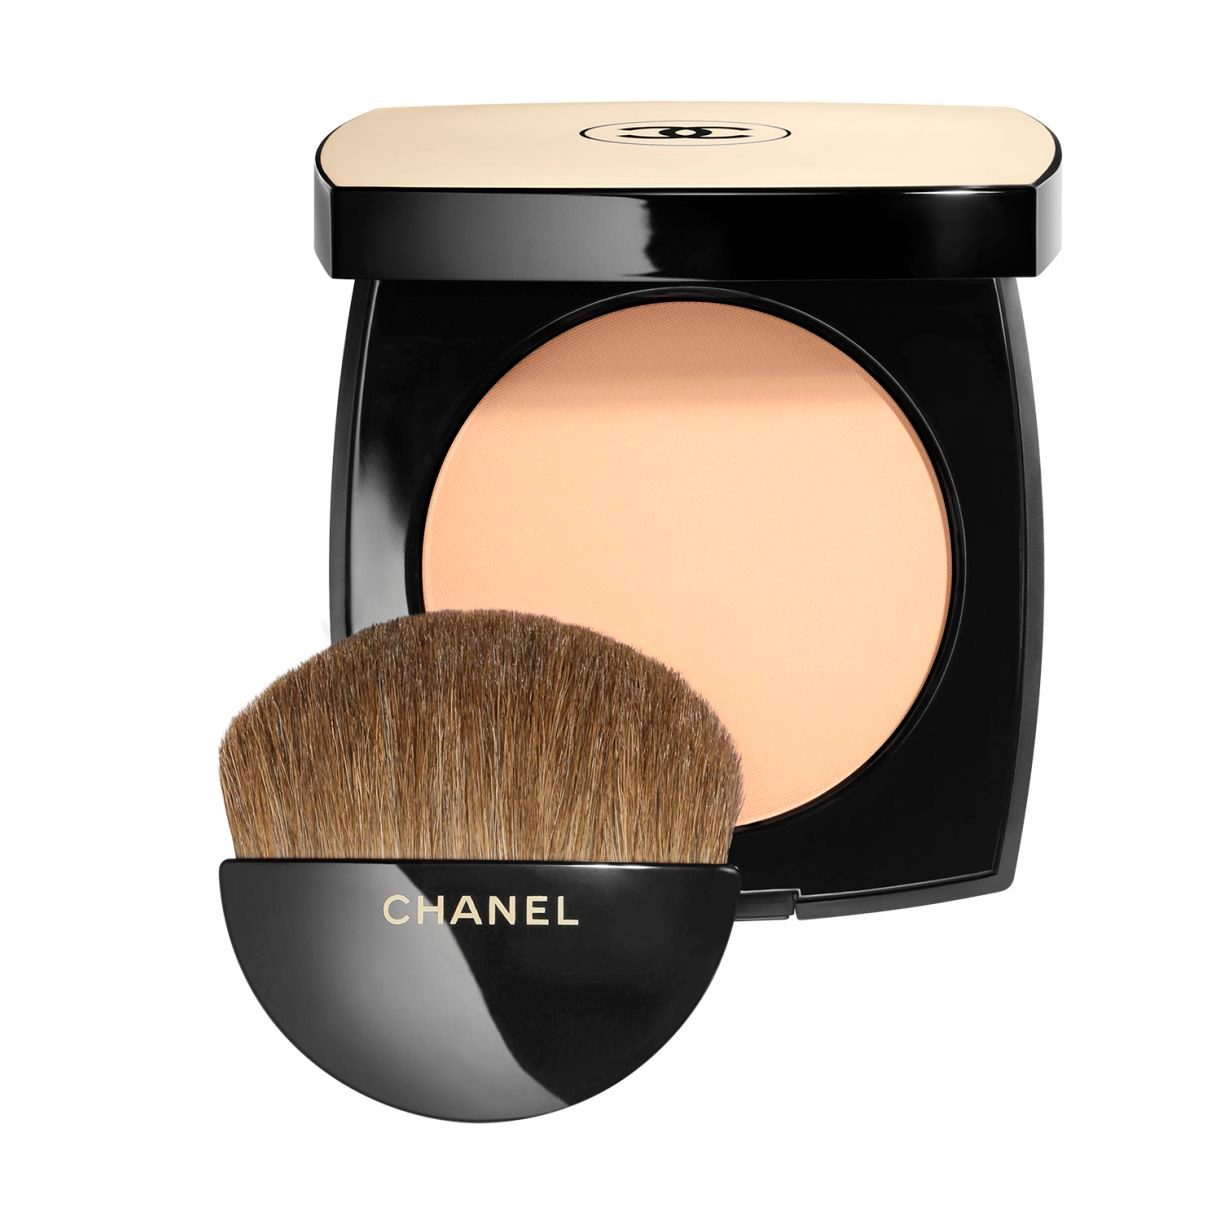 LES BEIGES HEALTHY GLOW SHEER POWDER SPF 15 / PA++ N°20 12G